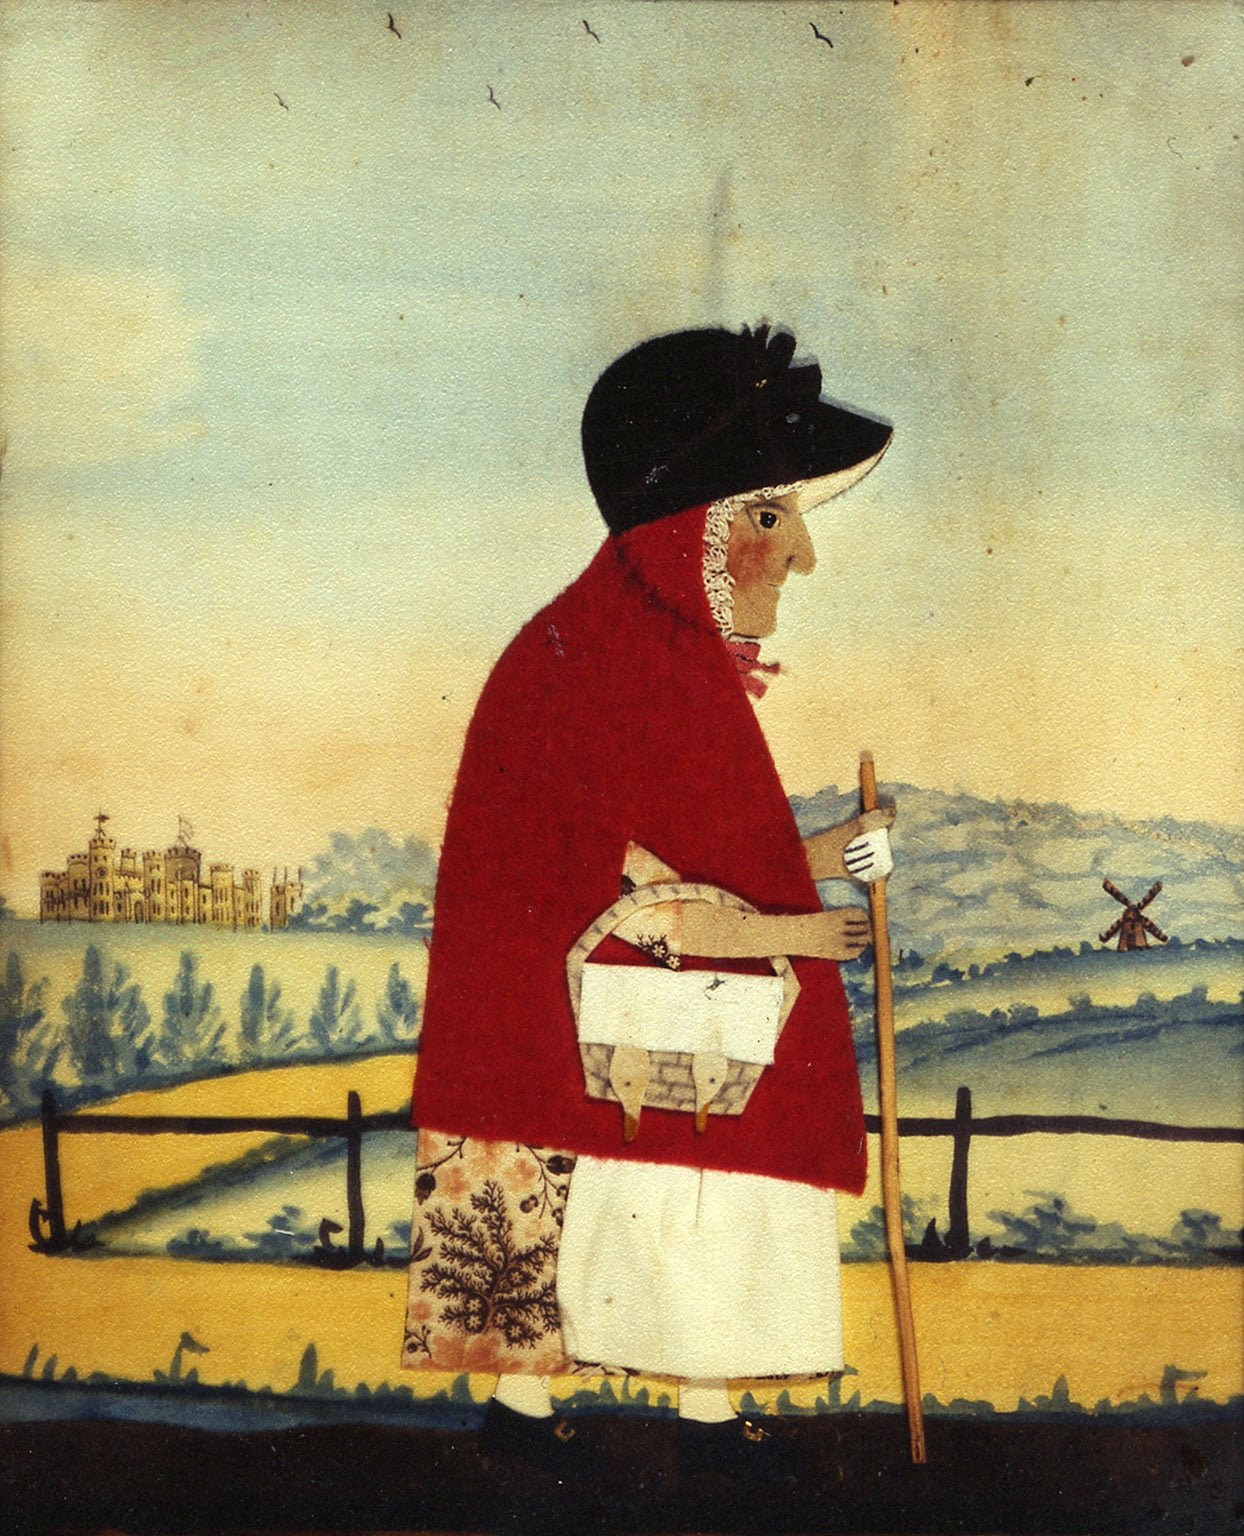 2. British Folk Art: The House that Jack Built, Tate Britain, London, 10 June - 31 August. 50% off entry with National Art Pass - George Smart, Goose Woman, c 1840 Courtesy of Tunbridge Wells Museum and Art Gallery